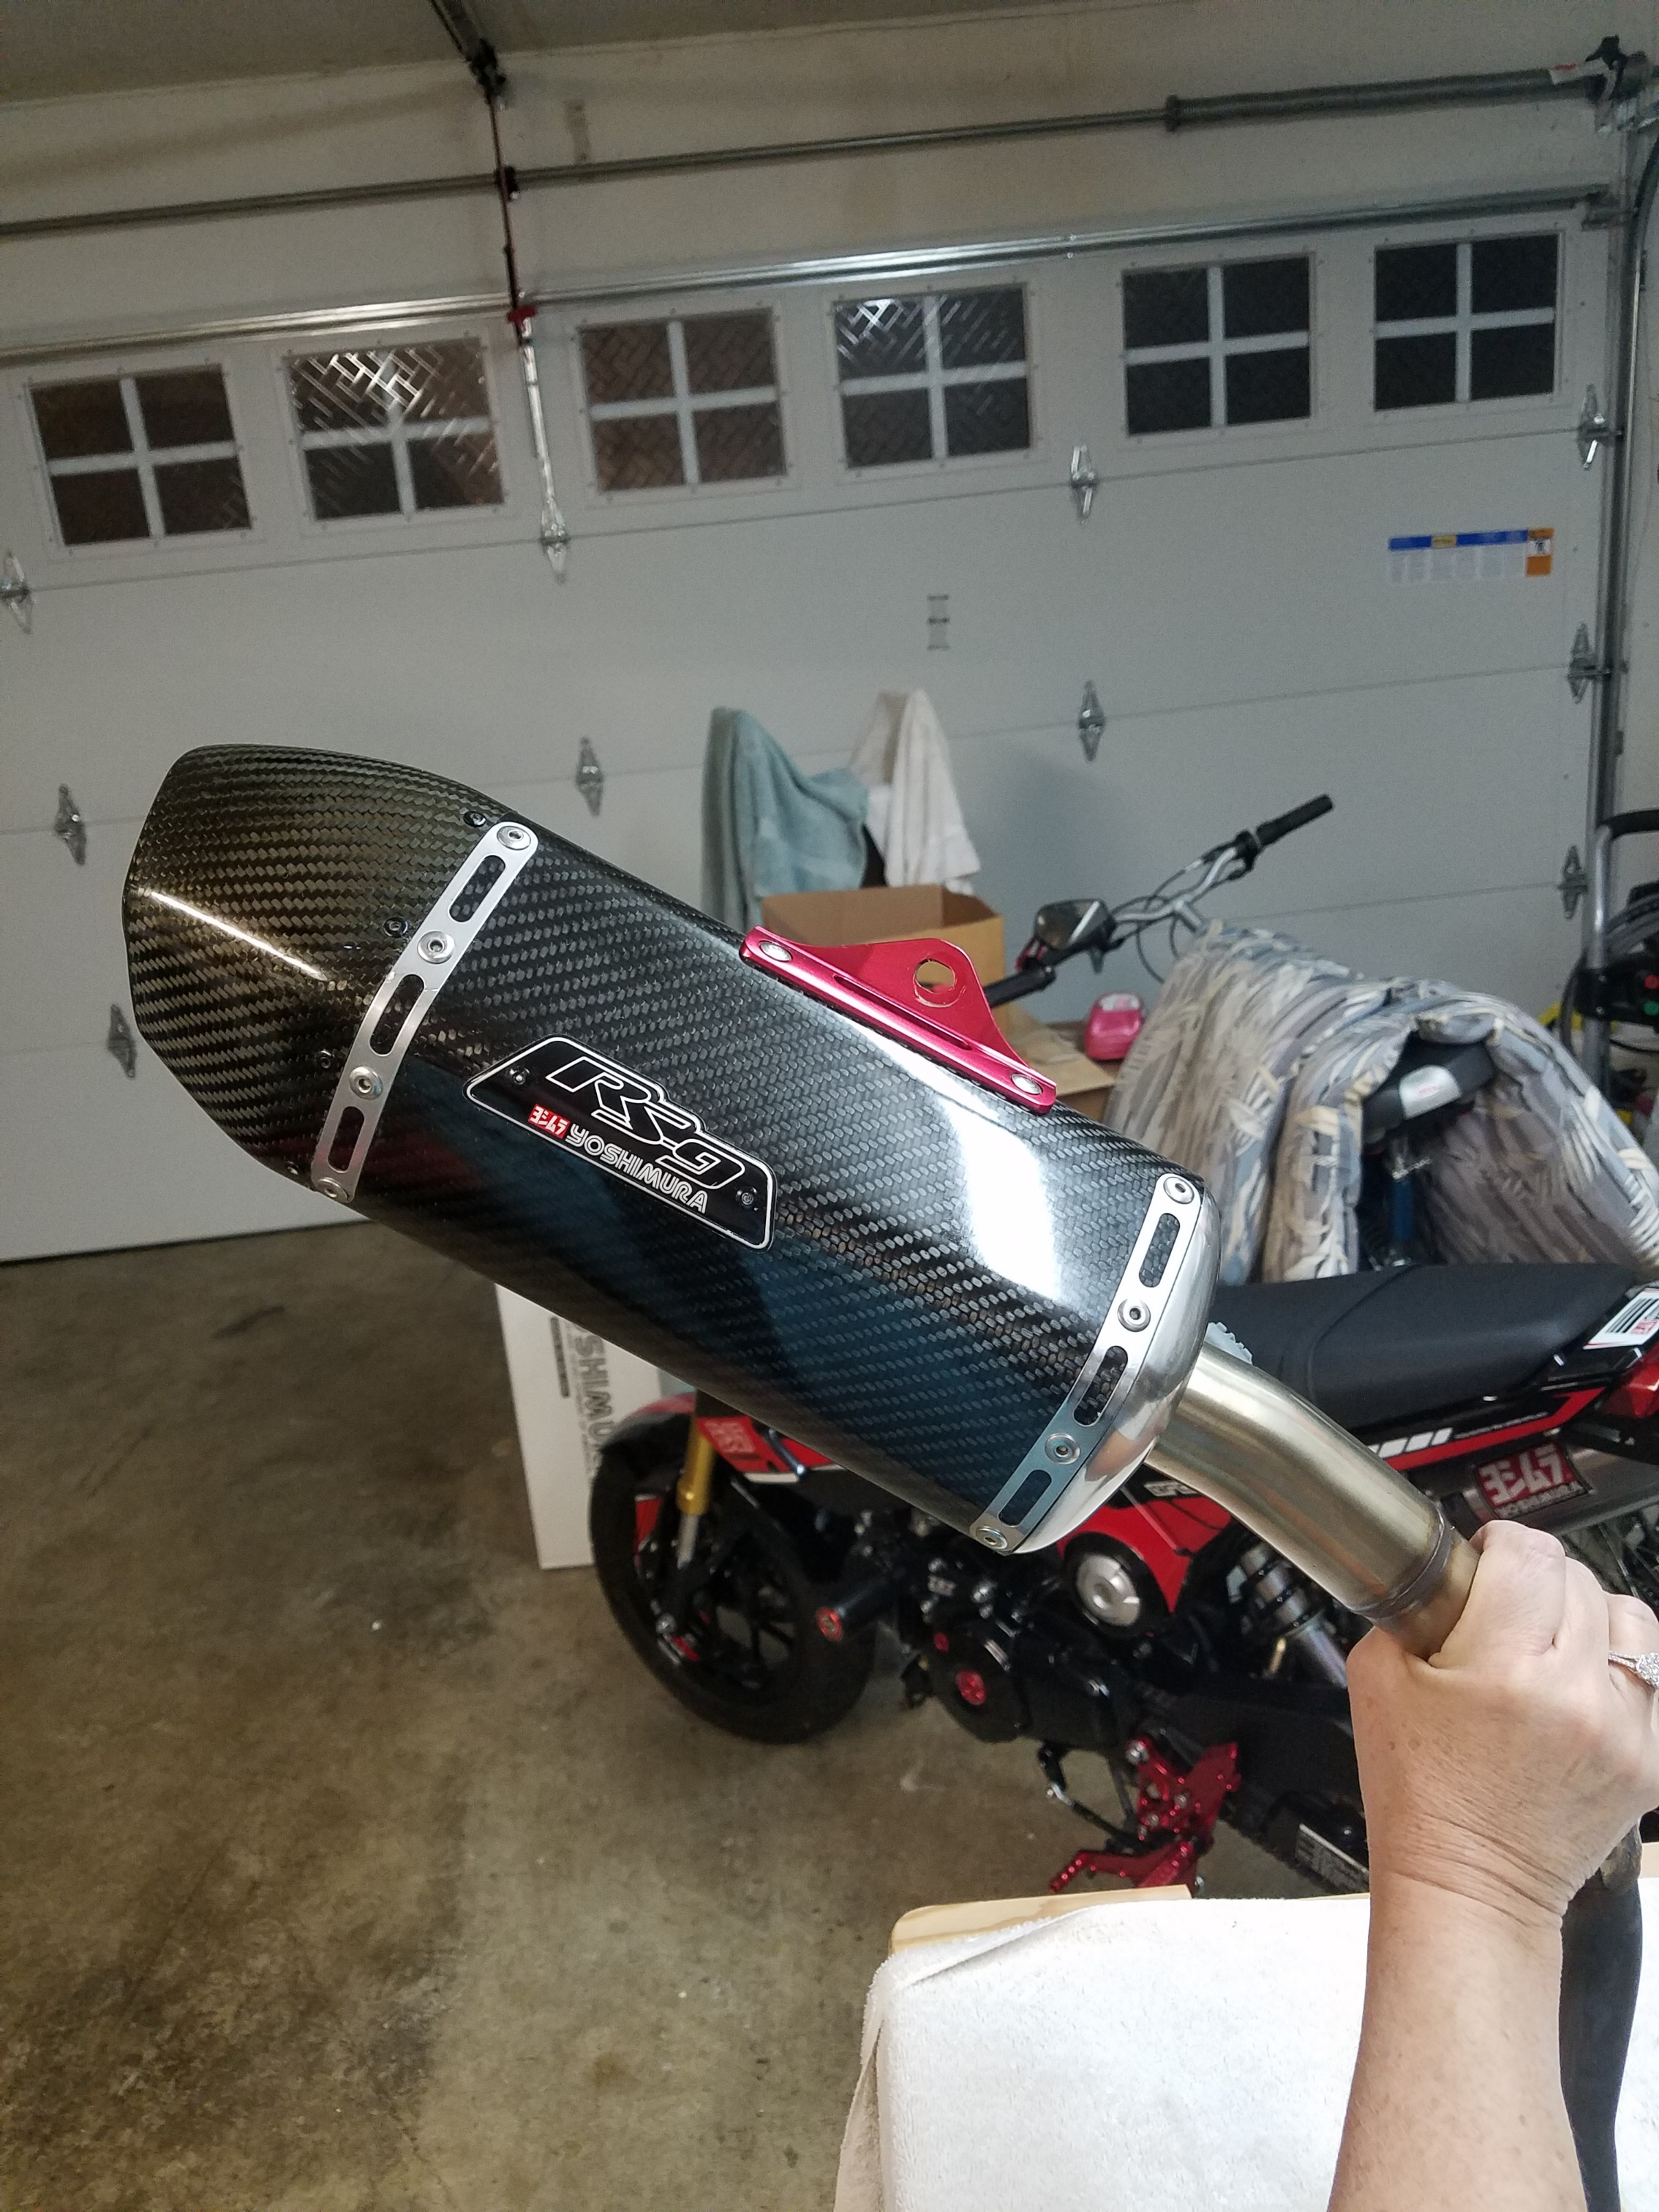 Yoshimura RS9 Carbon Fiber canister and stainless tailpipe-20190131_203139_resized_1.jpg